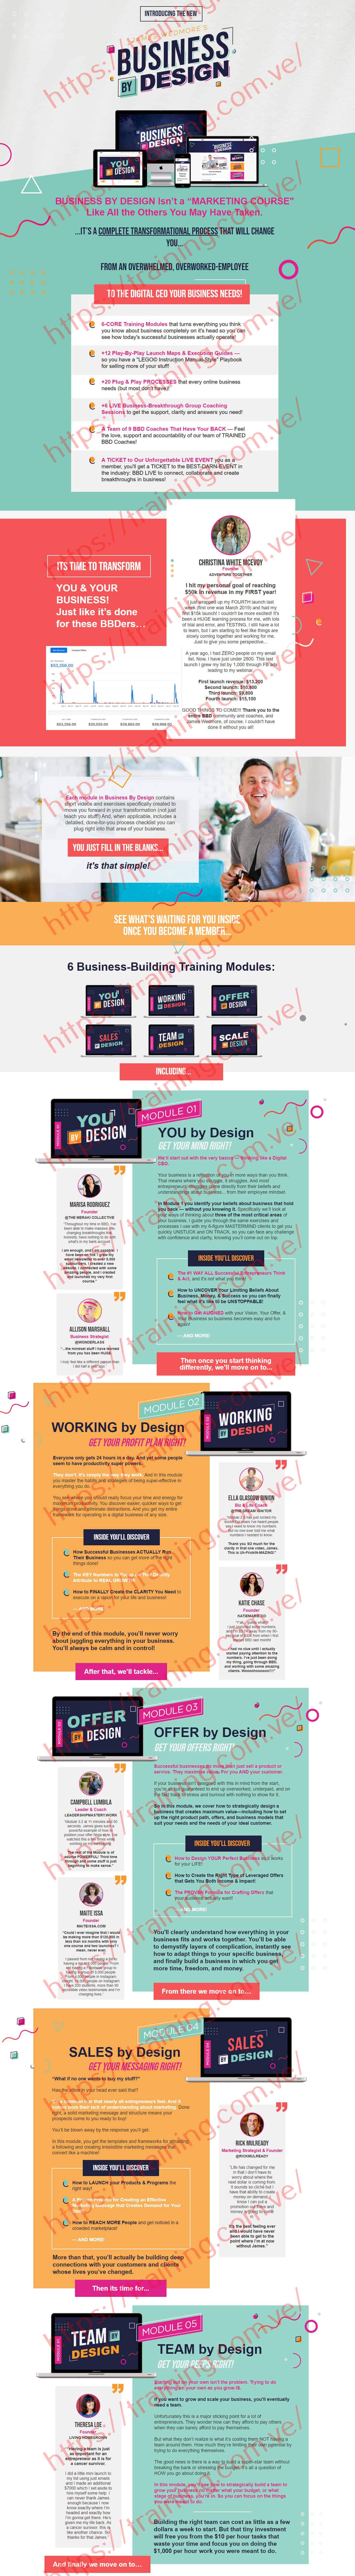 BUSINESS By DESIGN 2020 by James Wedmore Sales page